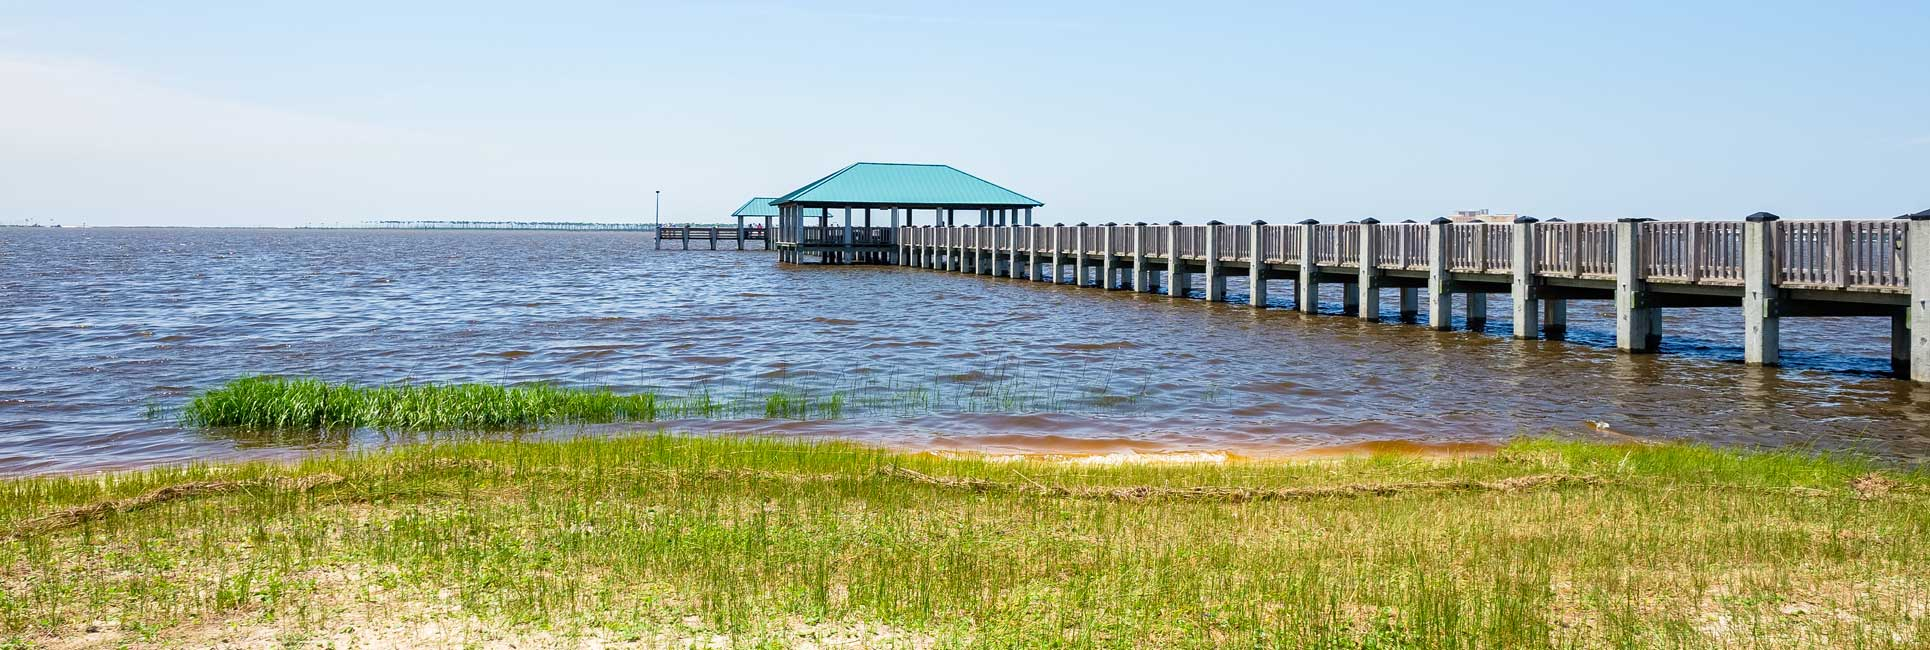 A very long wooden pier with a roof at the end on the water in Ocean Springs, MS